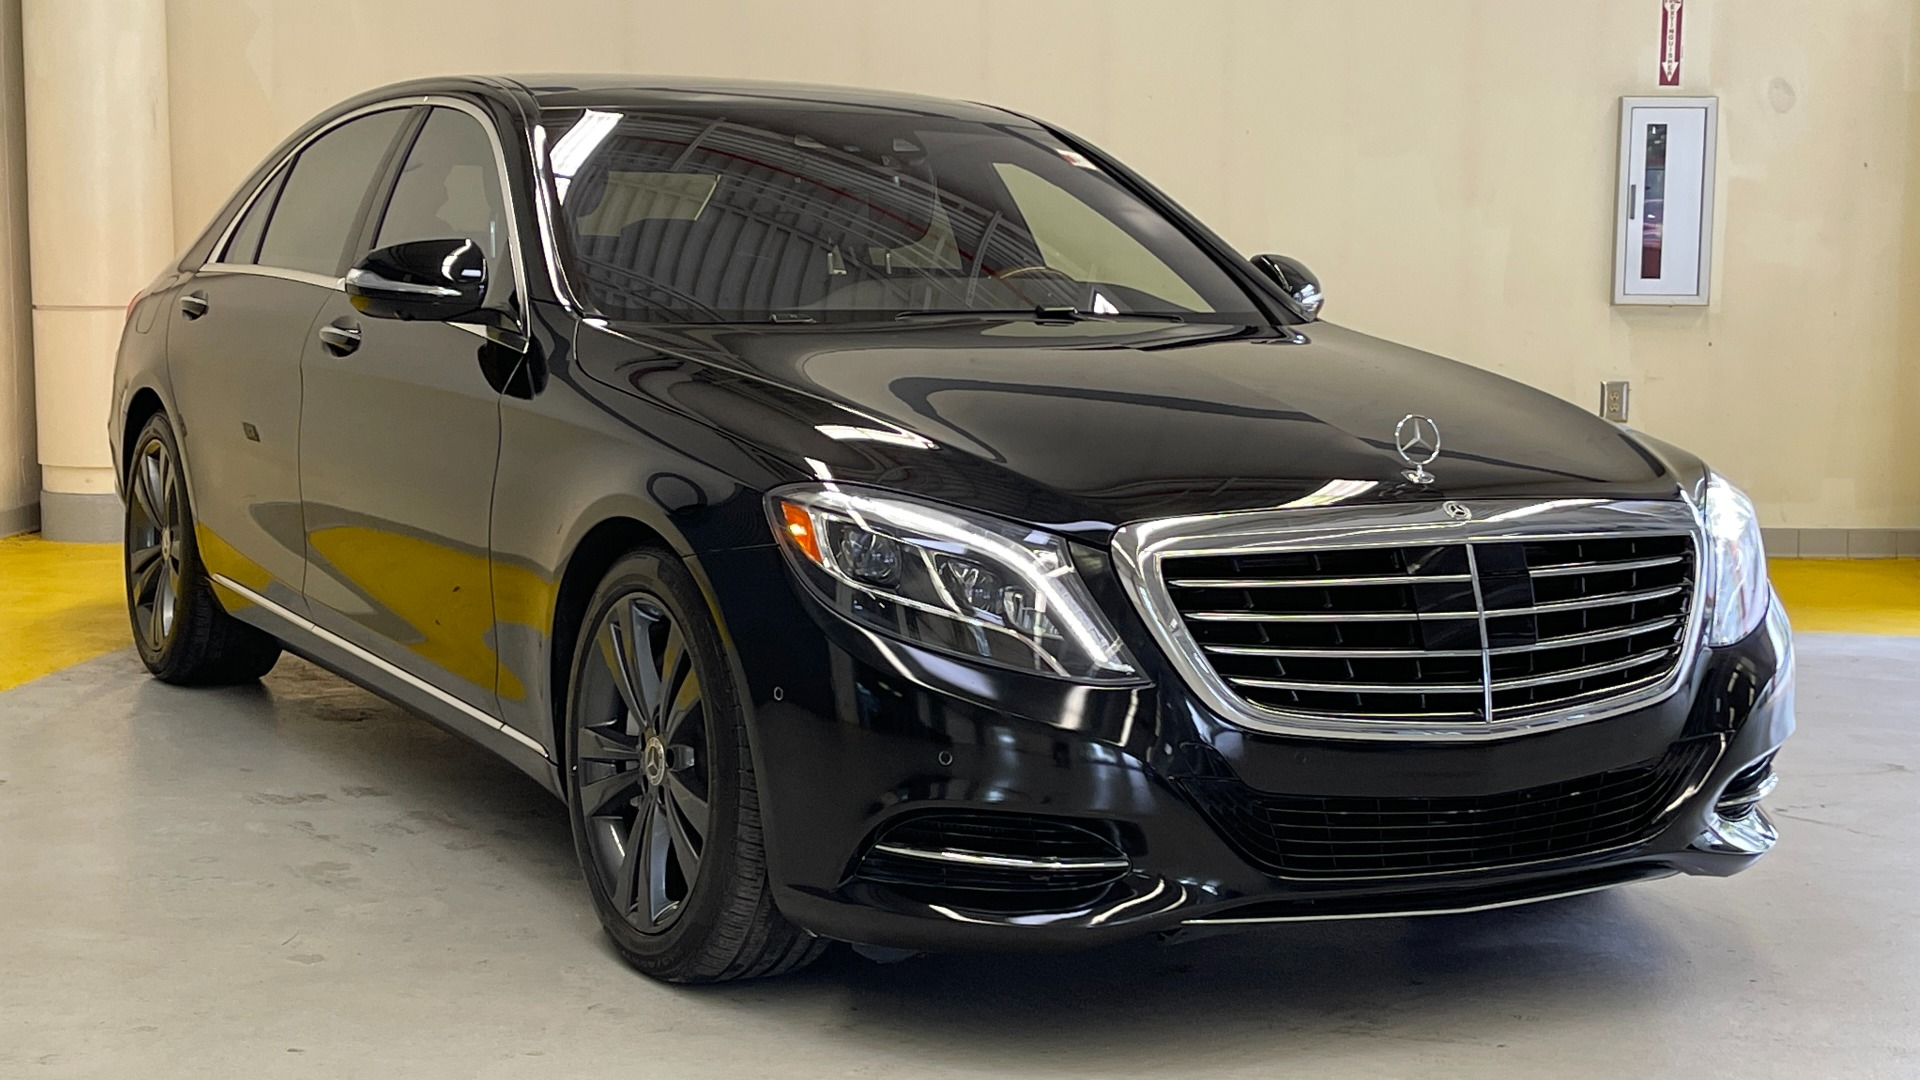 Used 2017 Mercedes-Benz S-CLASS S 550 4MATIC PREMIUM / NAV / BURMESTER / SUNROOF / REARVIEW for sale $58,995 at Formula Imports in Charlotte NC 28227 4